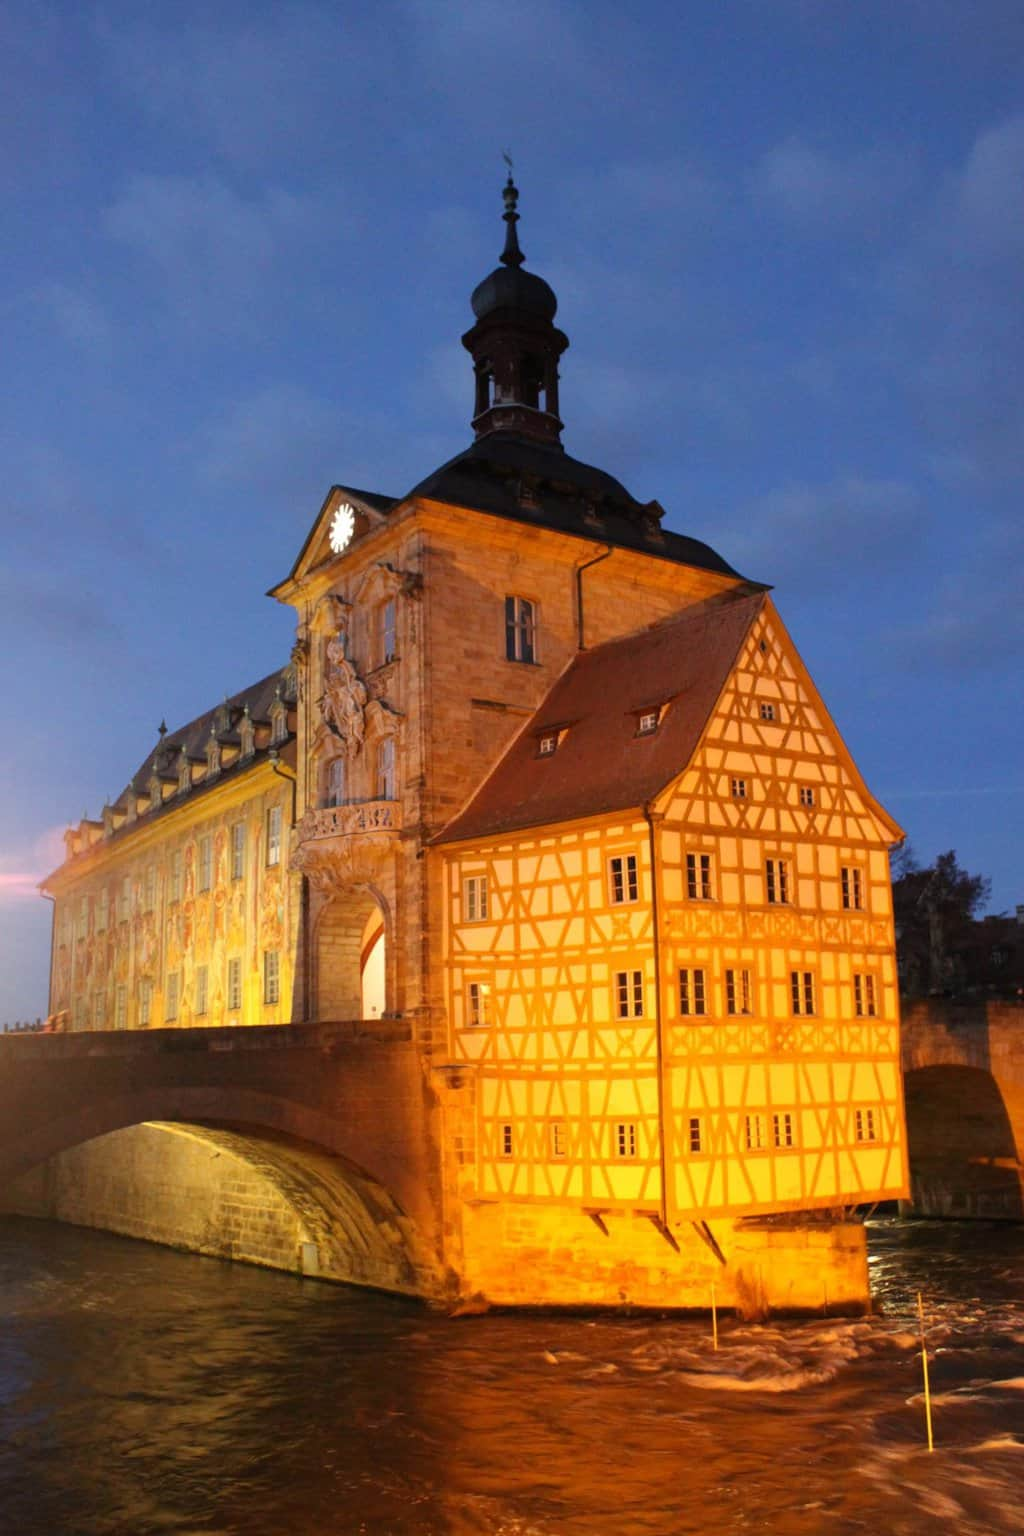 The Altes Rathaus in Bamberg